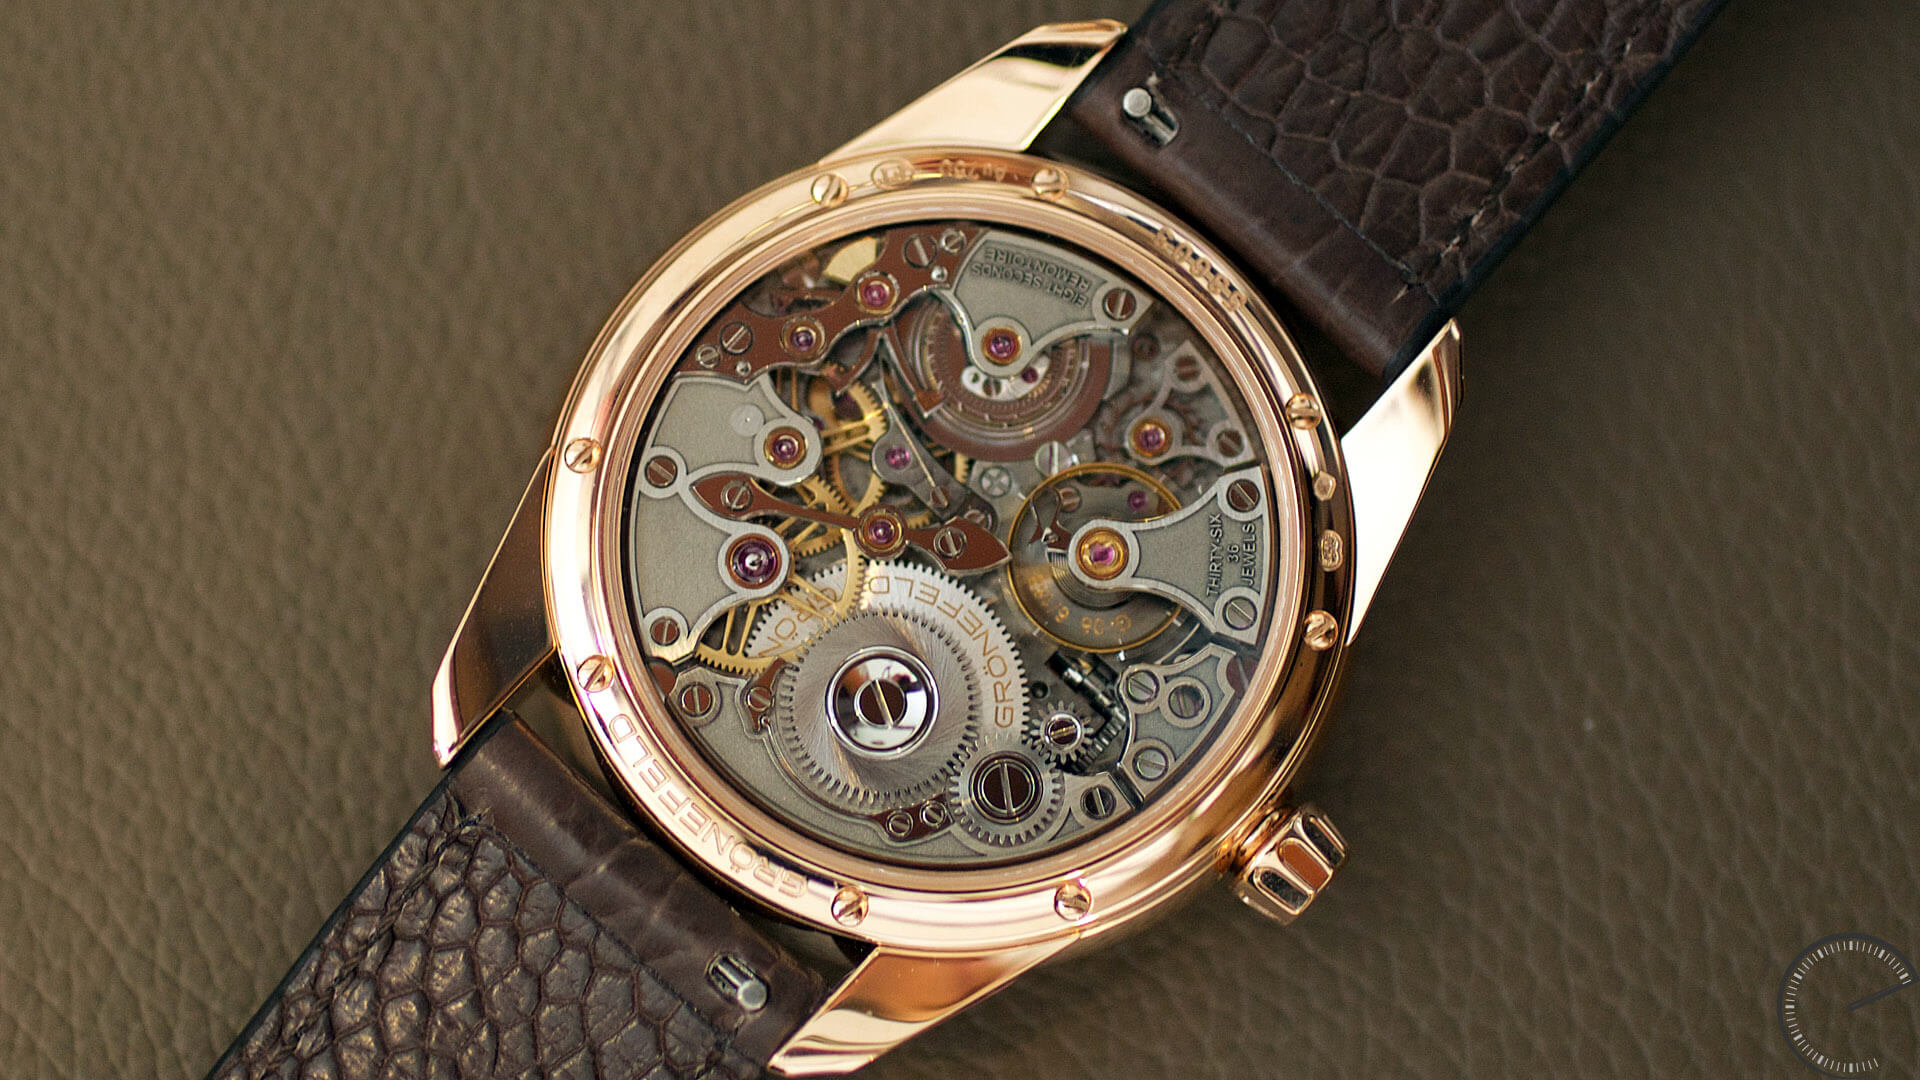 Gronefeld_1941_Remontoire_Red_Gold_movement1 - ESCAPEMENT magazine - reviews of fine watches